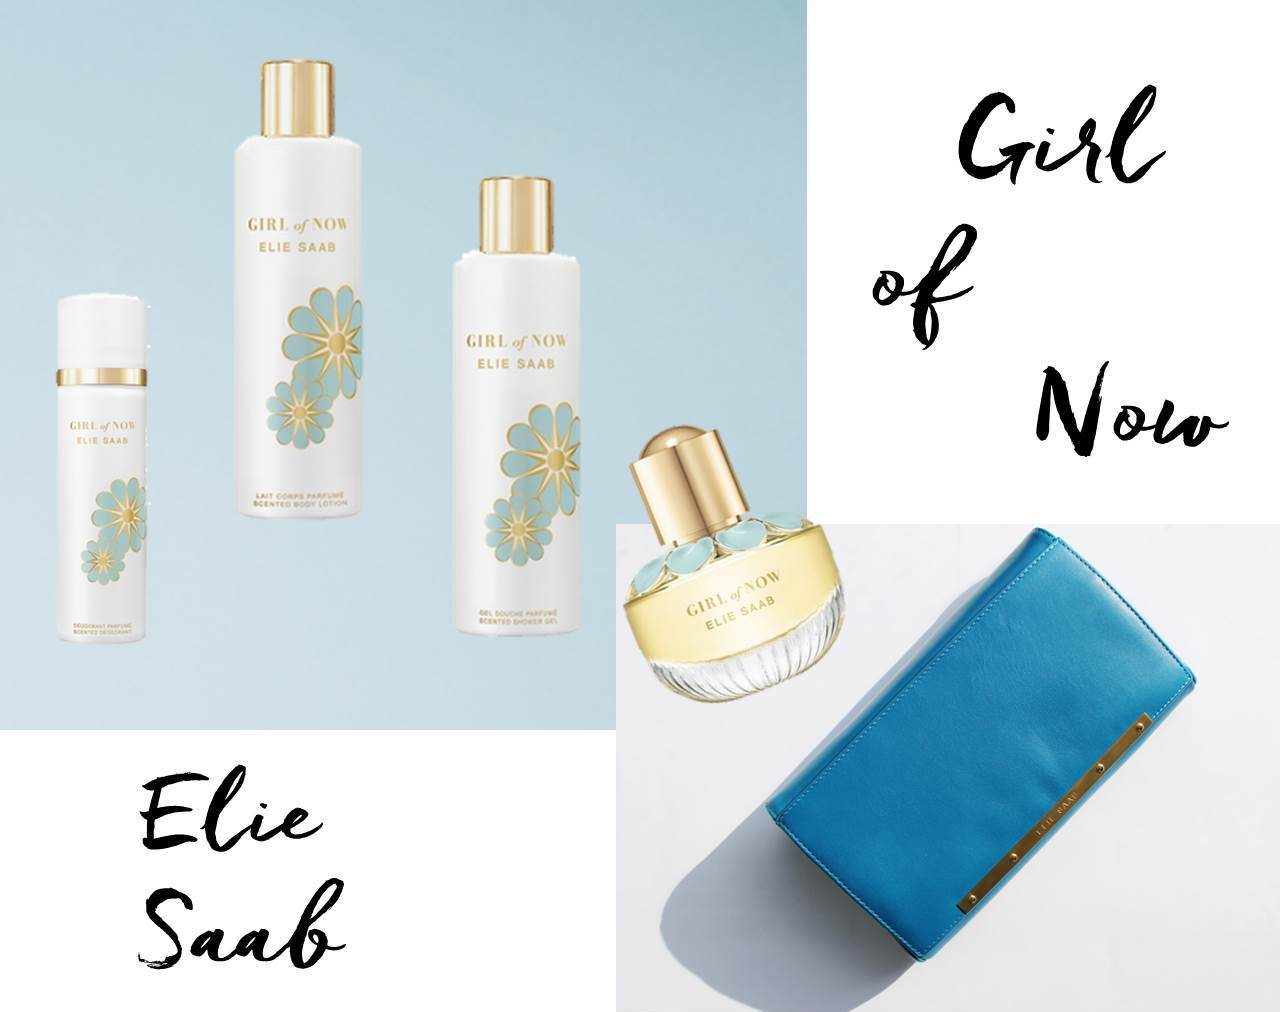 Elie_Saab_Girl_of_Now